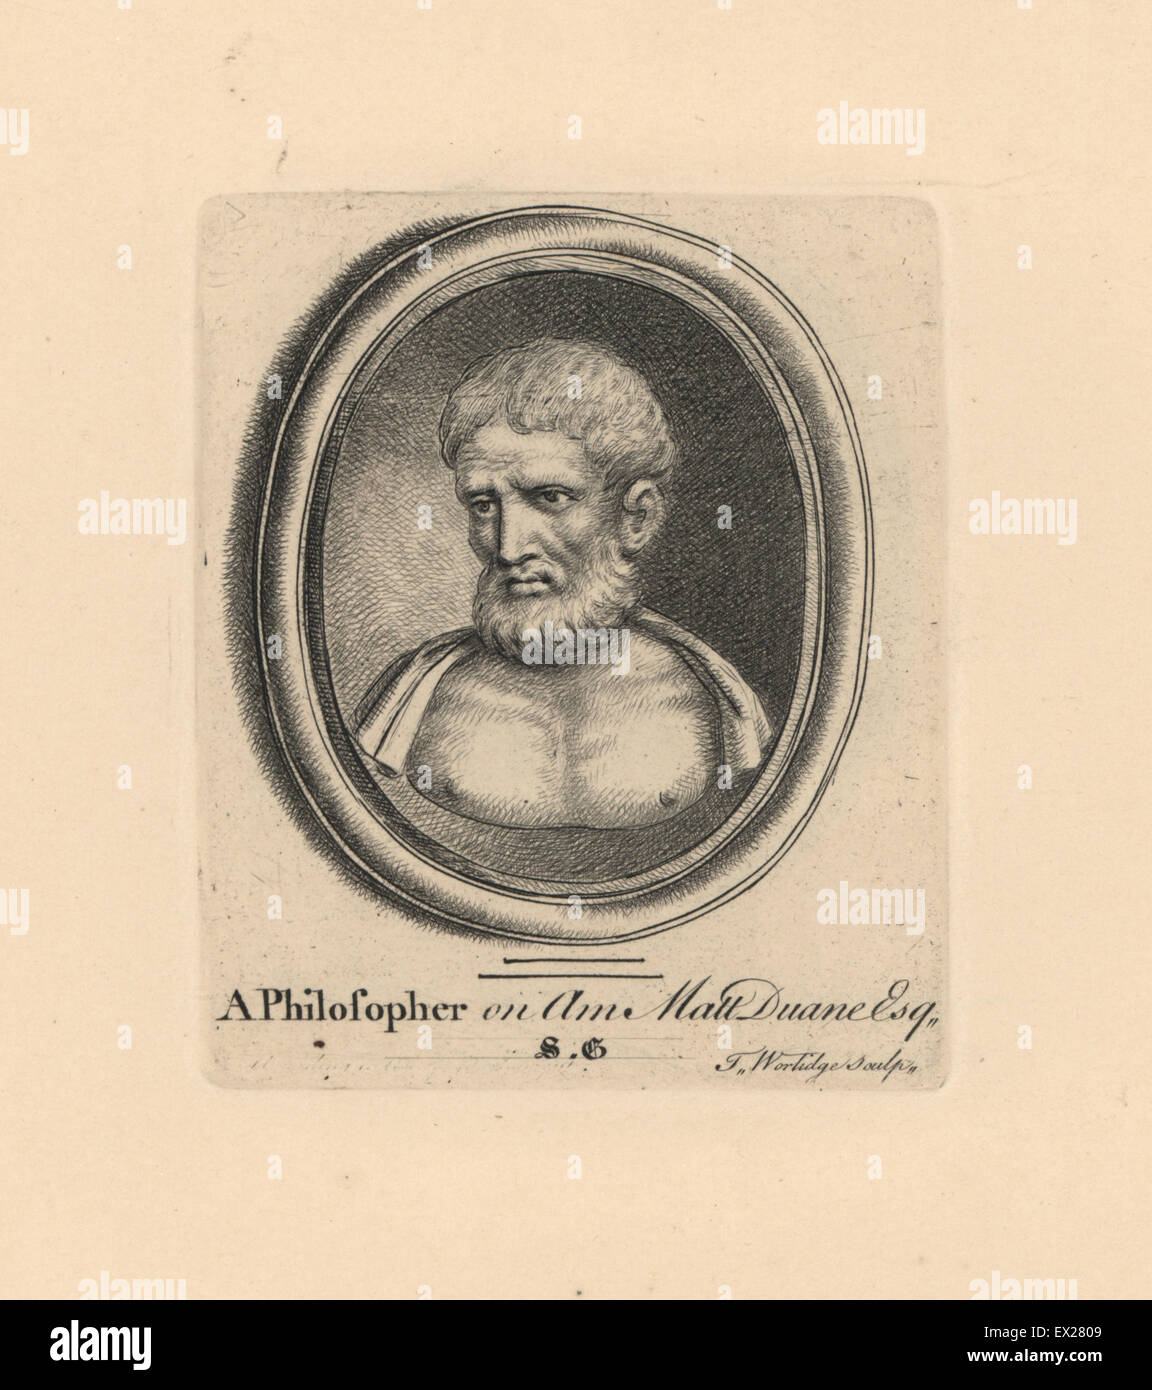 Portrait of an ancient Greek Philosopher on amethyst from Matthew Duane's collection. Copperplate engraving - Stock Image